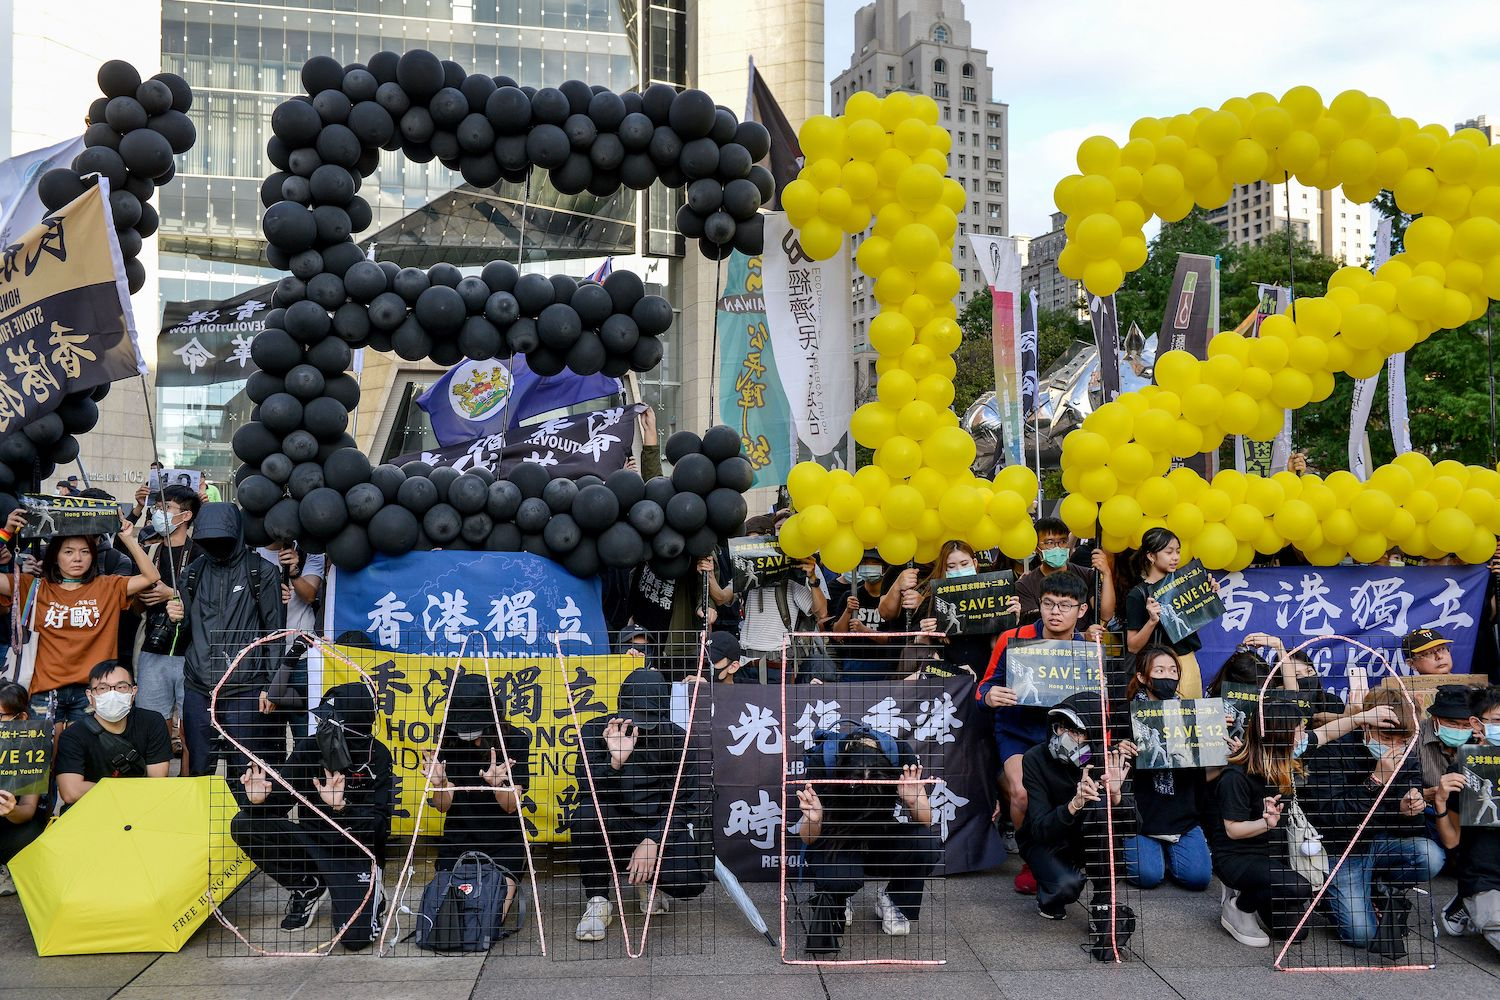 People protest in support of Save12, the campaign to save twelve Hong Kong pro-democracy activists caught by mainland Chinese authorities trying to flee Hong Kong to Taiwan by boat, in central Taipei on Oct. 25.